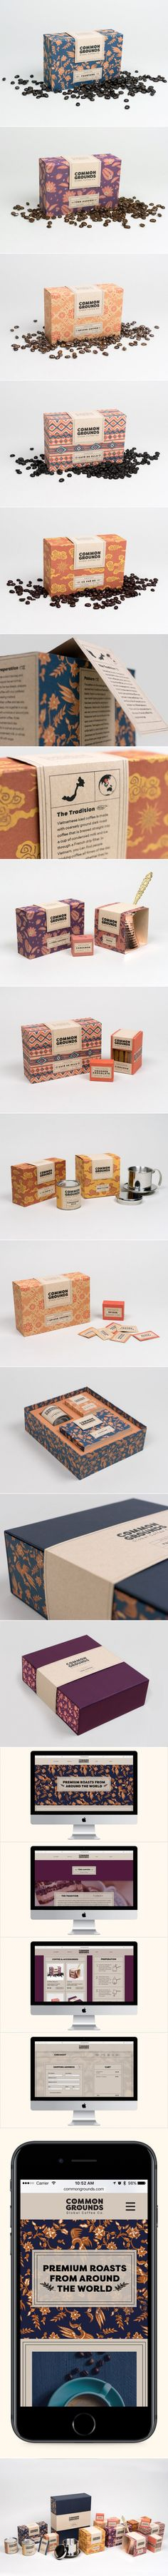 Vibrant Coffee Packaging Inspired by the Textiles and Arts of the Beans' Origins — The Dieline | Packaging & Branding Design & Innovation News